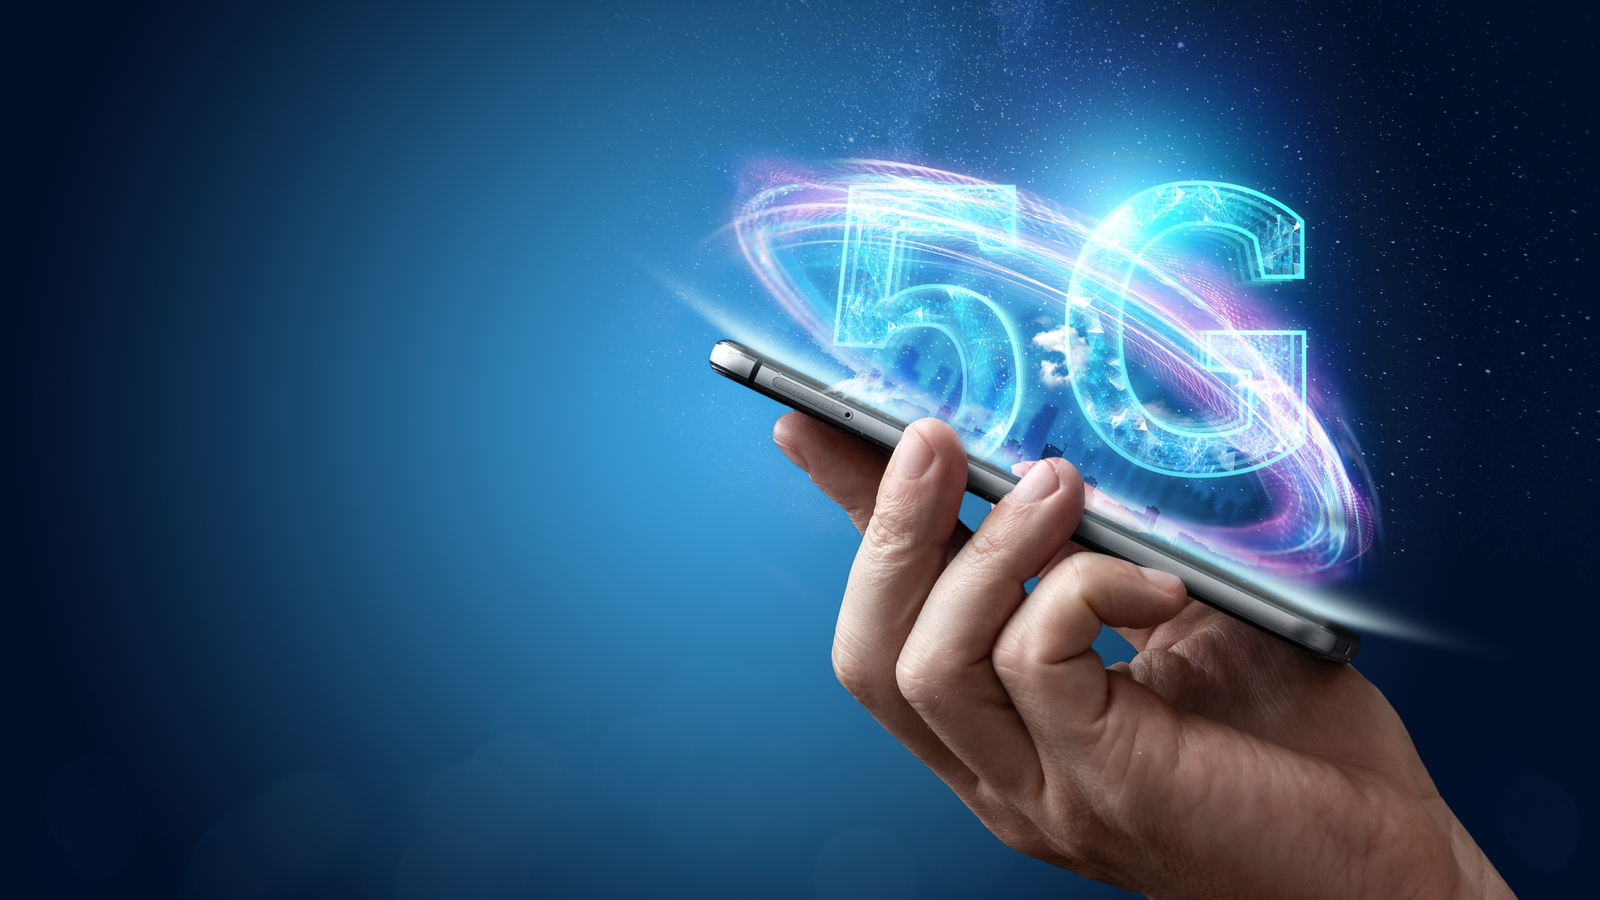 U.S. business leaders believe 5G will aid recovery from economic impact of COVID-19